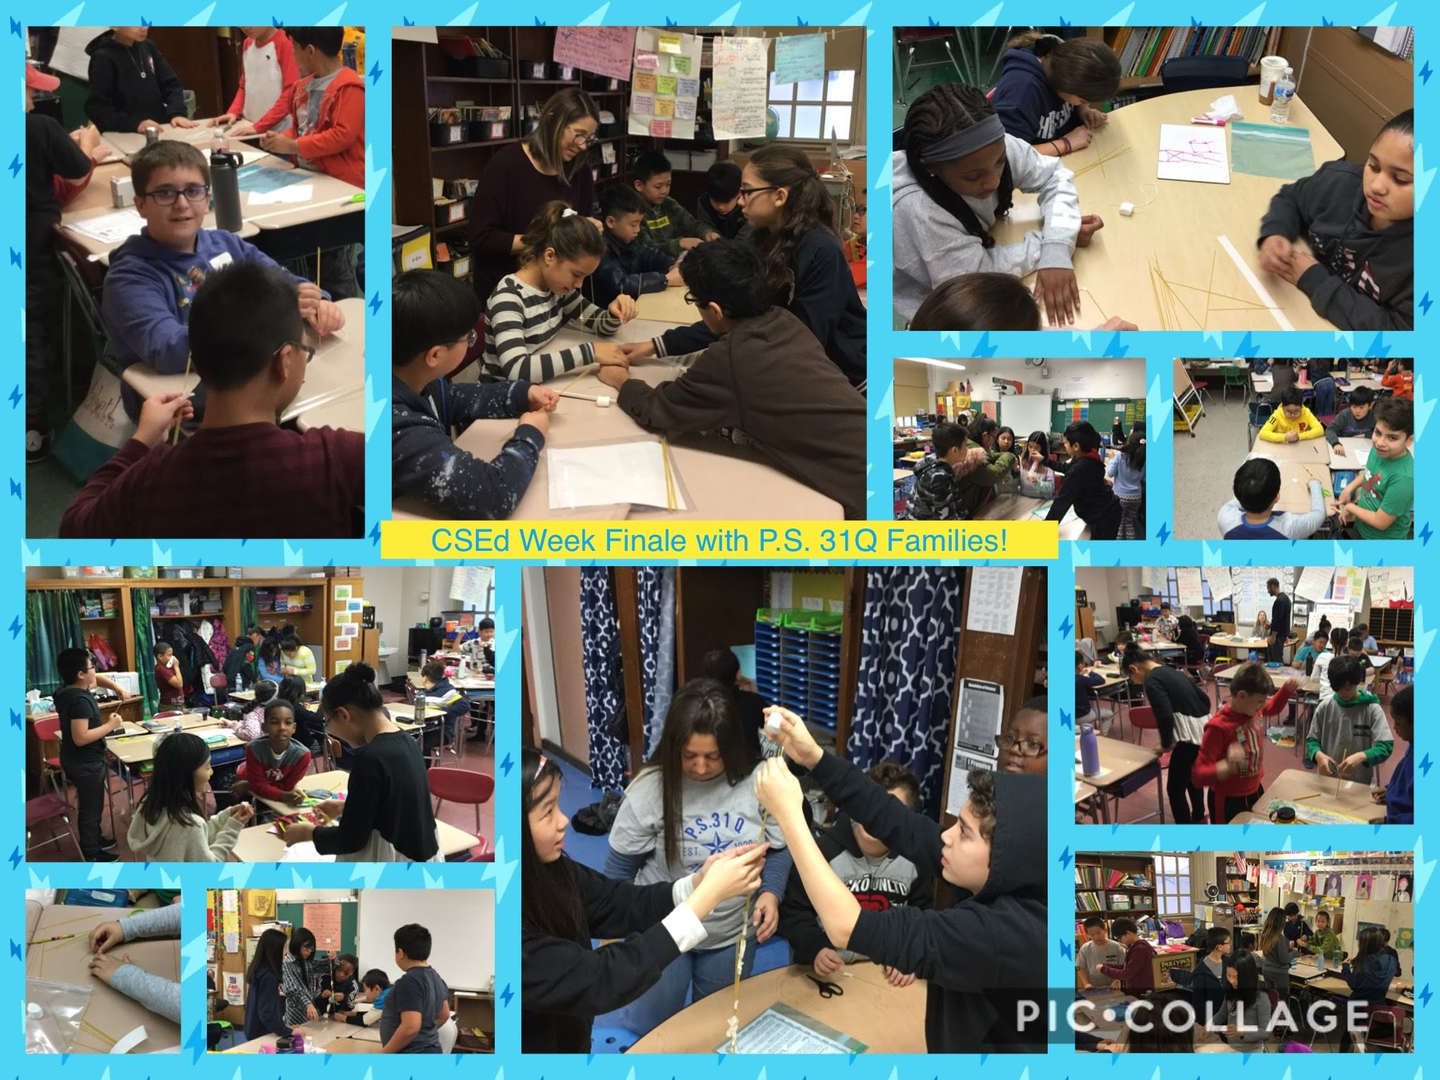 CSED Week Finale, Family Activity Collage 2